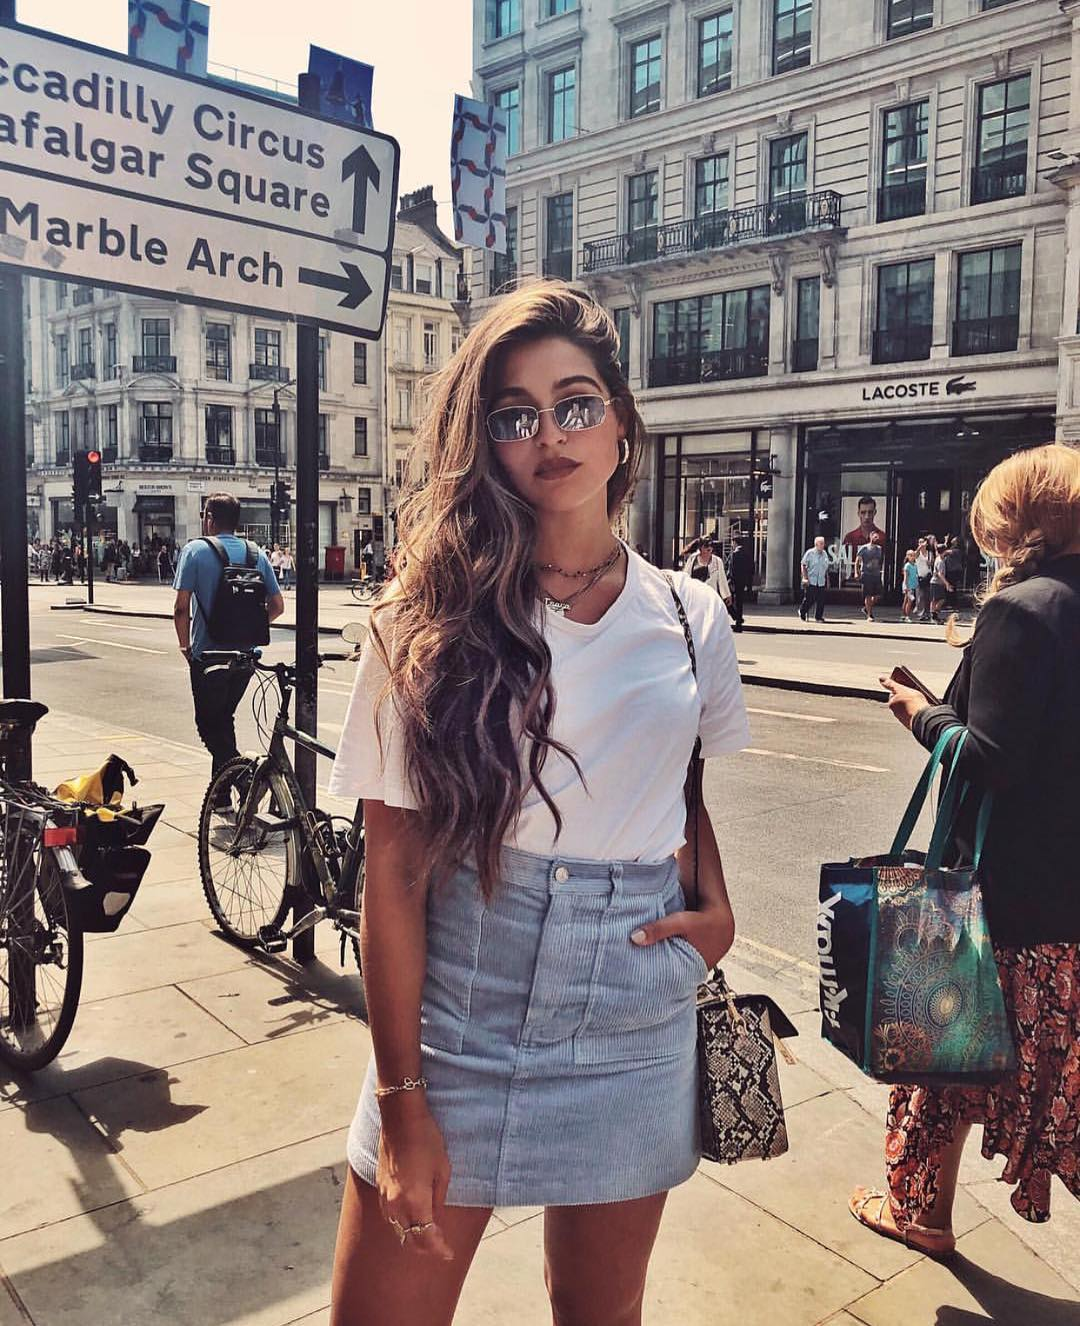 Nineties Fashion For Summer: White Tee And Wash Blue Denim Skirt 2019